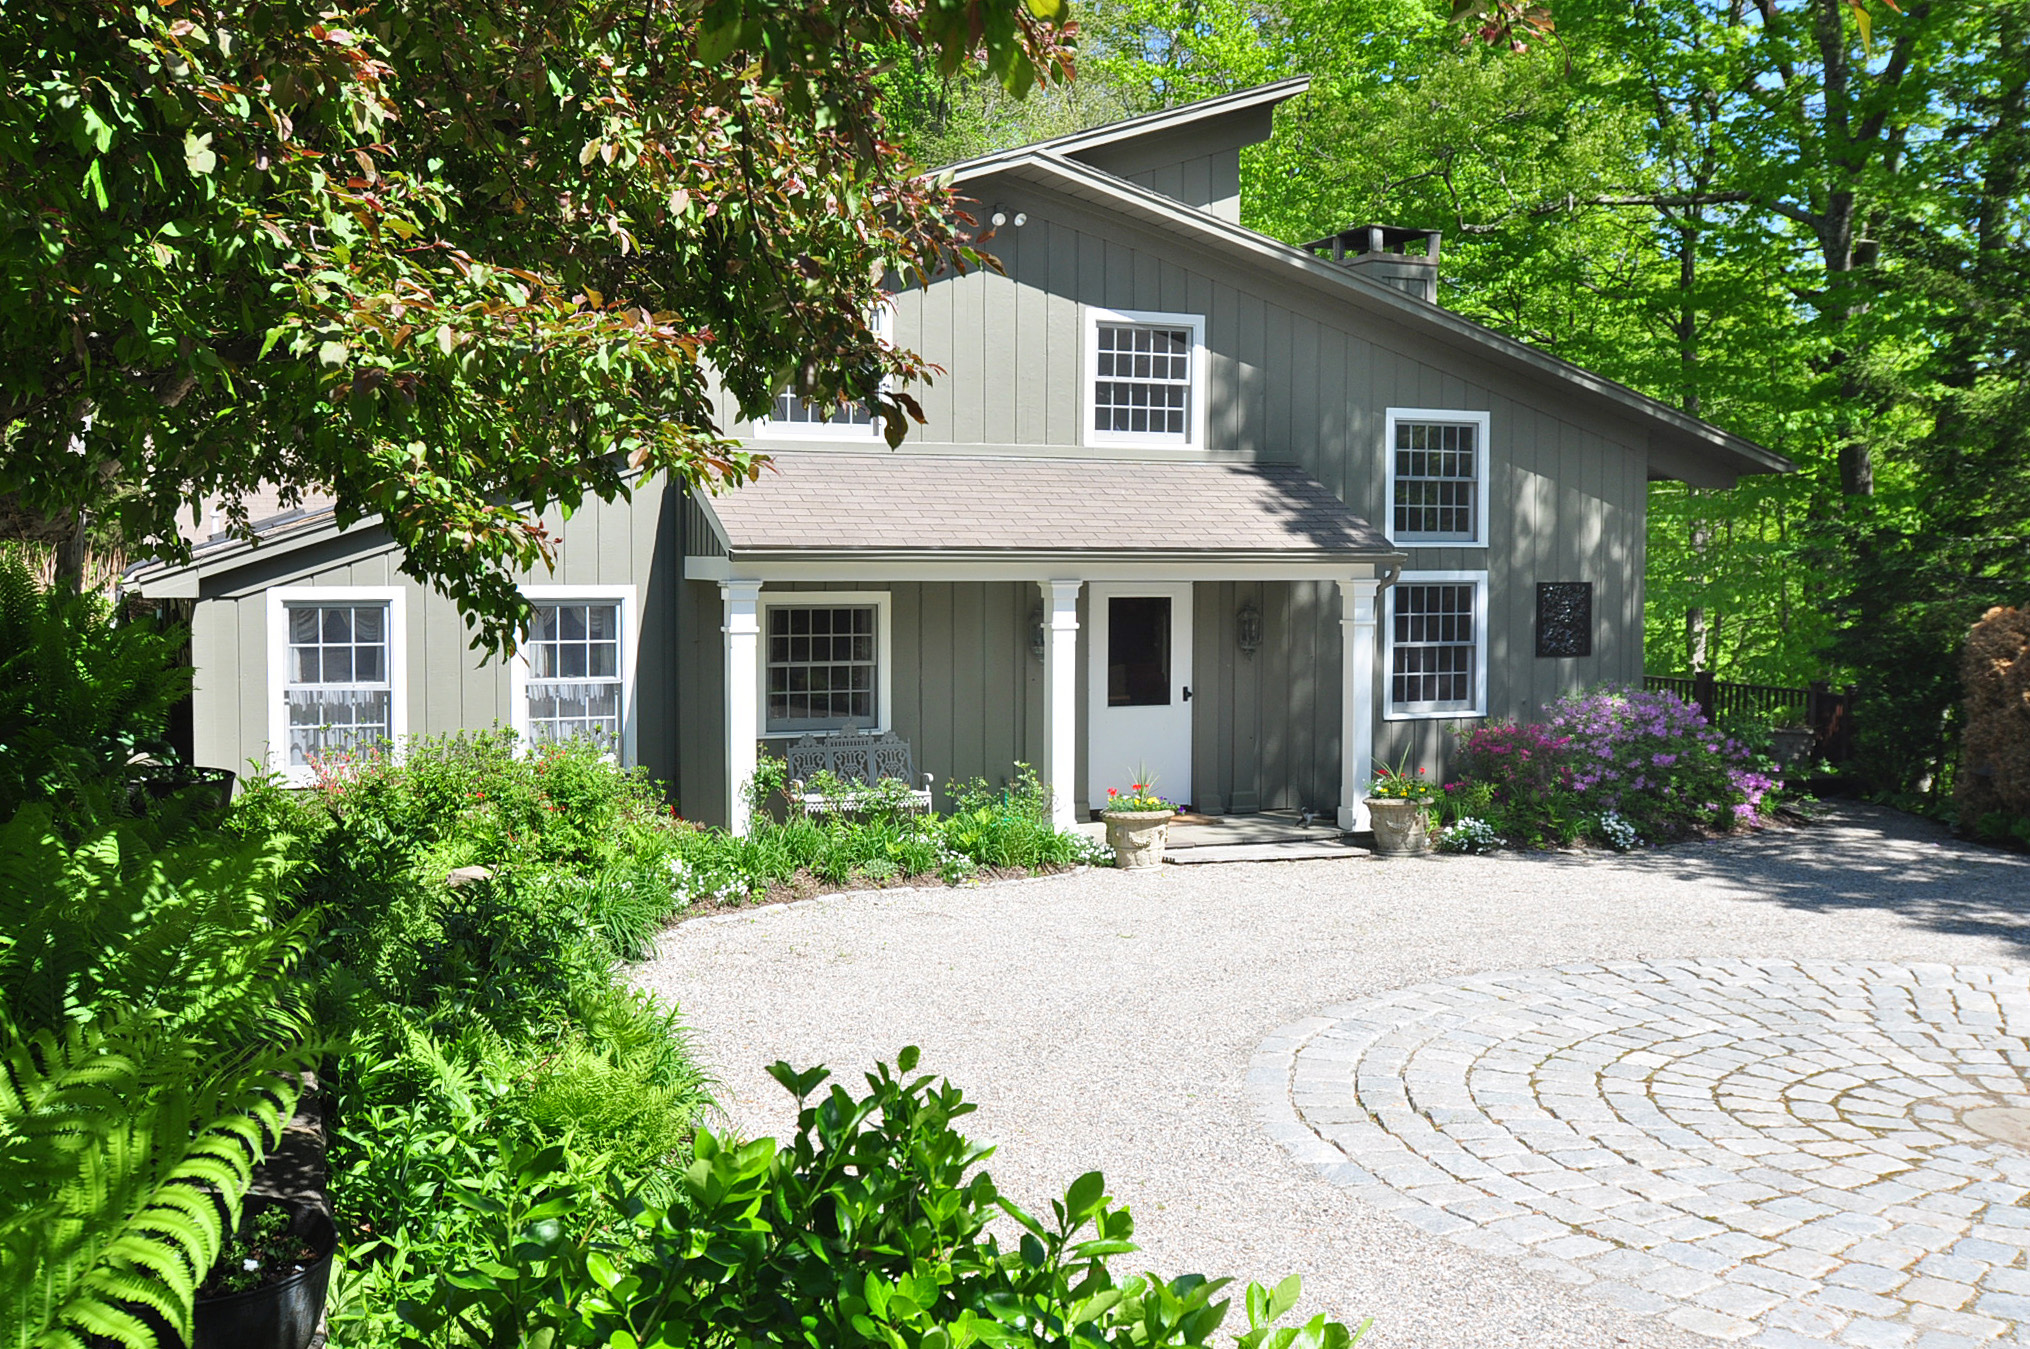 Single Family Home for Sale at Stylish Country Home 67 Squire Road Roxbury, Connecticut, 06783 United States